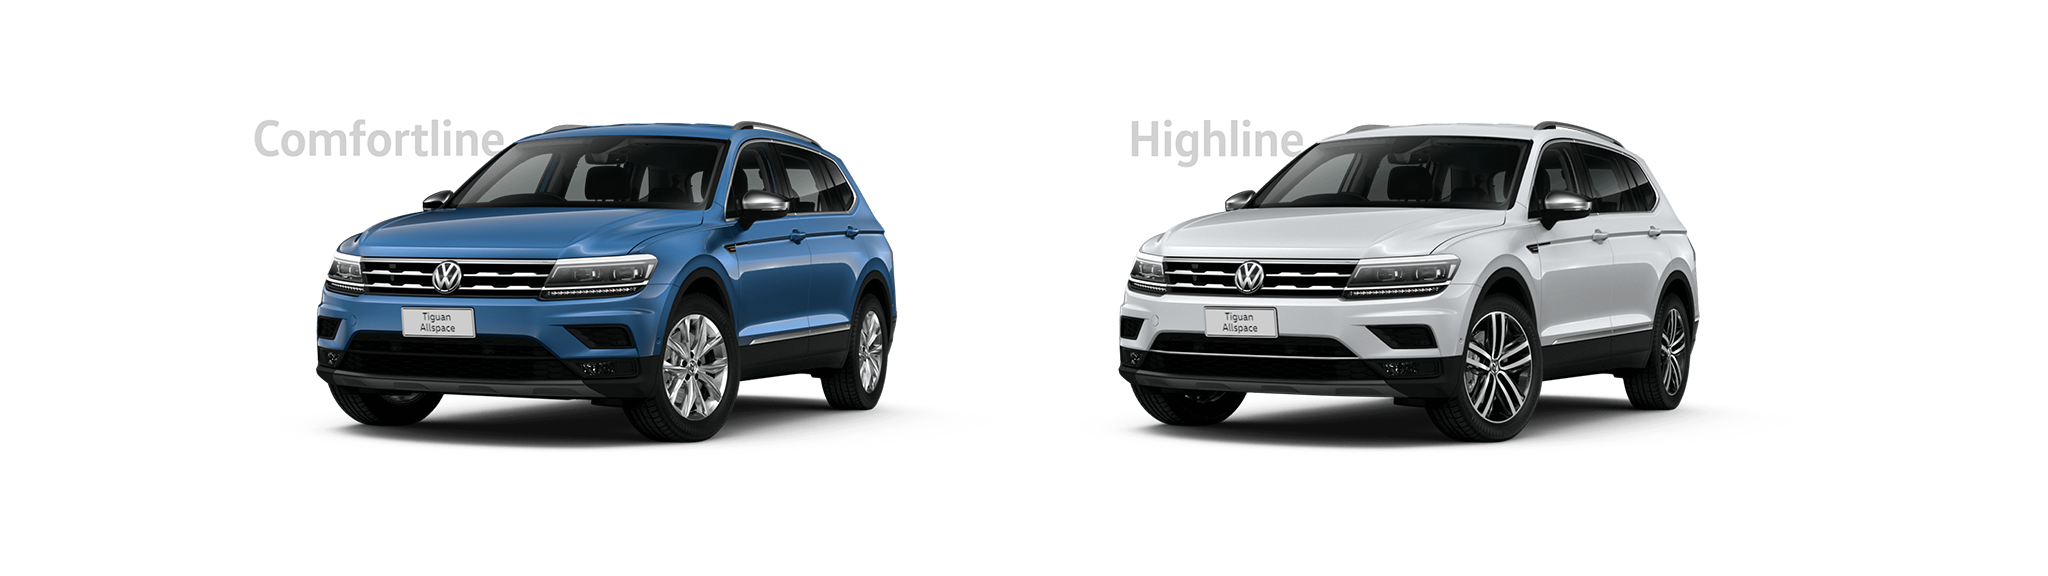 Tiguan Allspace Bayford Volkswagen Fairfield Vw Engine Parts Diagram Choose From 5 Different Options Across Two Variants The Comfortline Is Available With A 110tsi 110tdi Or 132tsi And Highline Variant